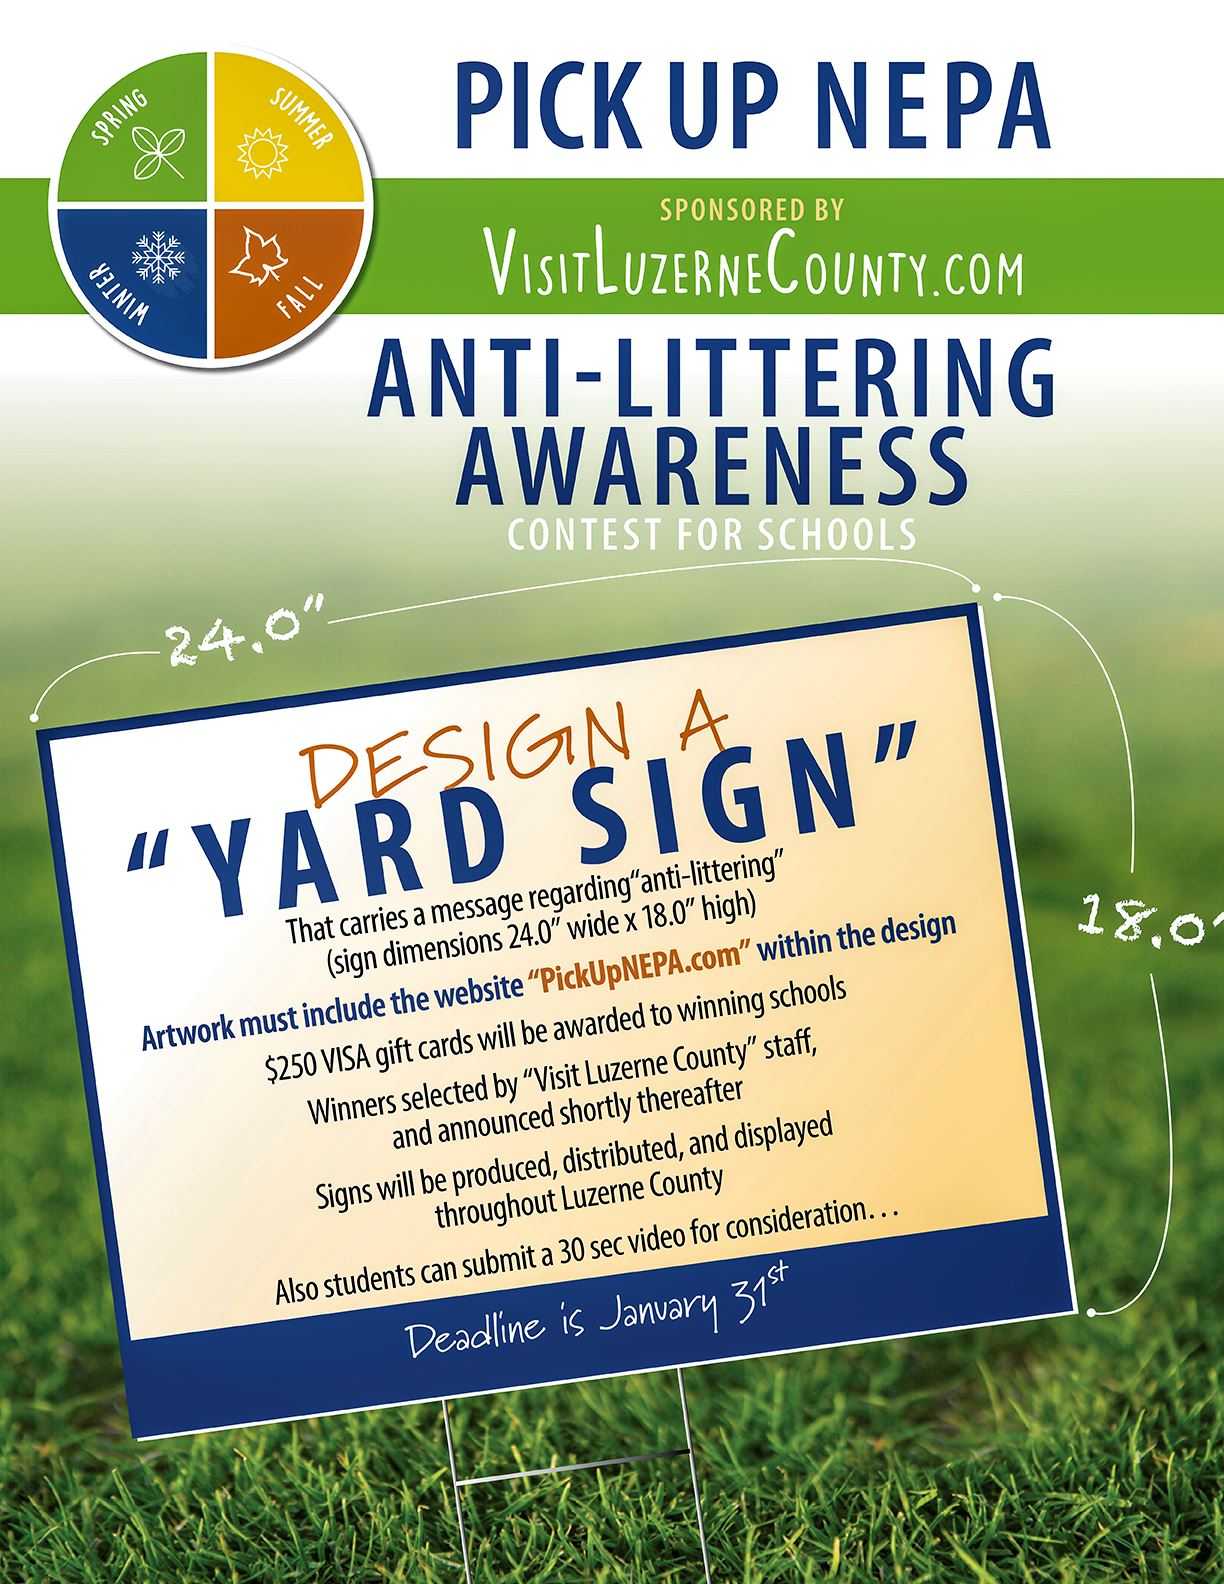 Yard Sign Contest